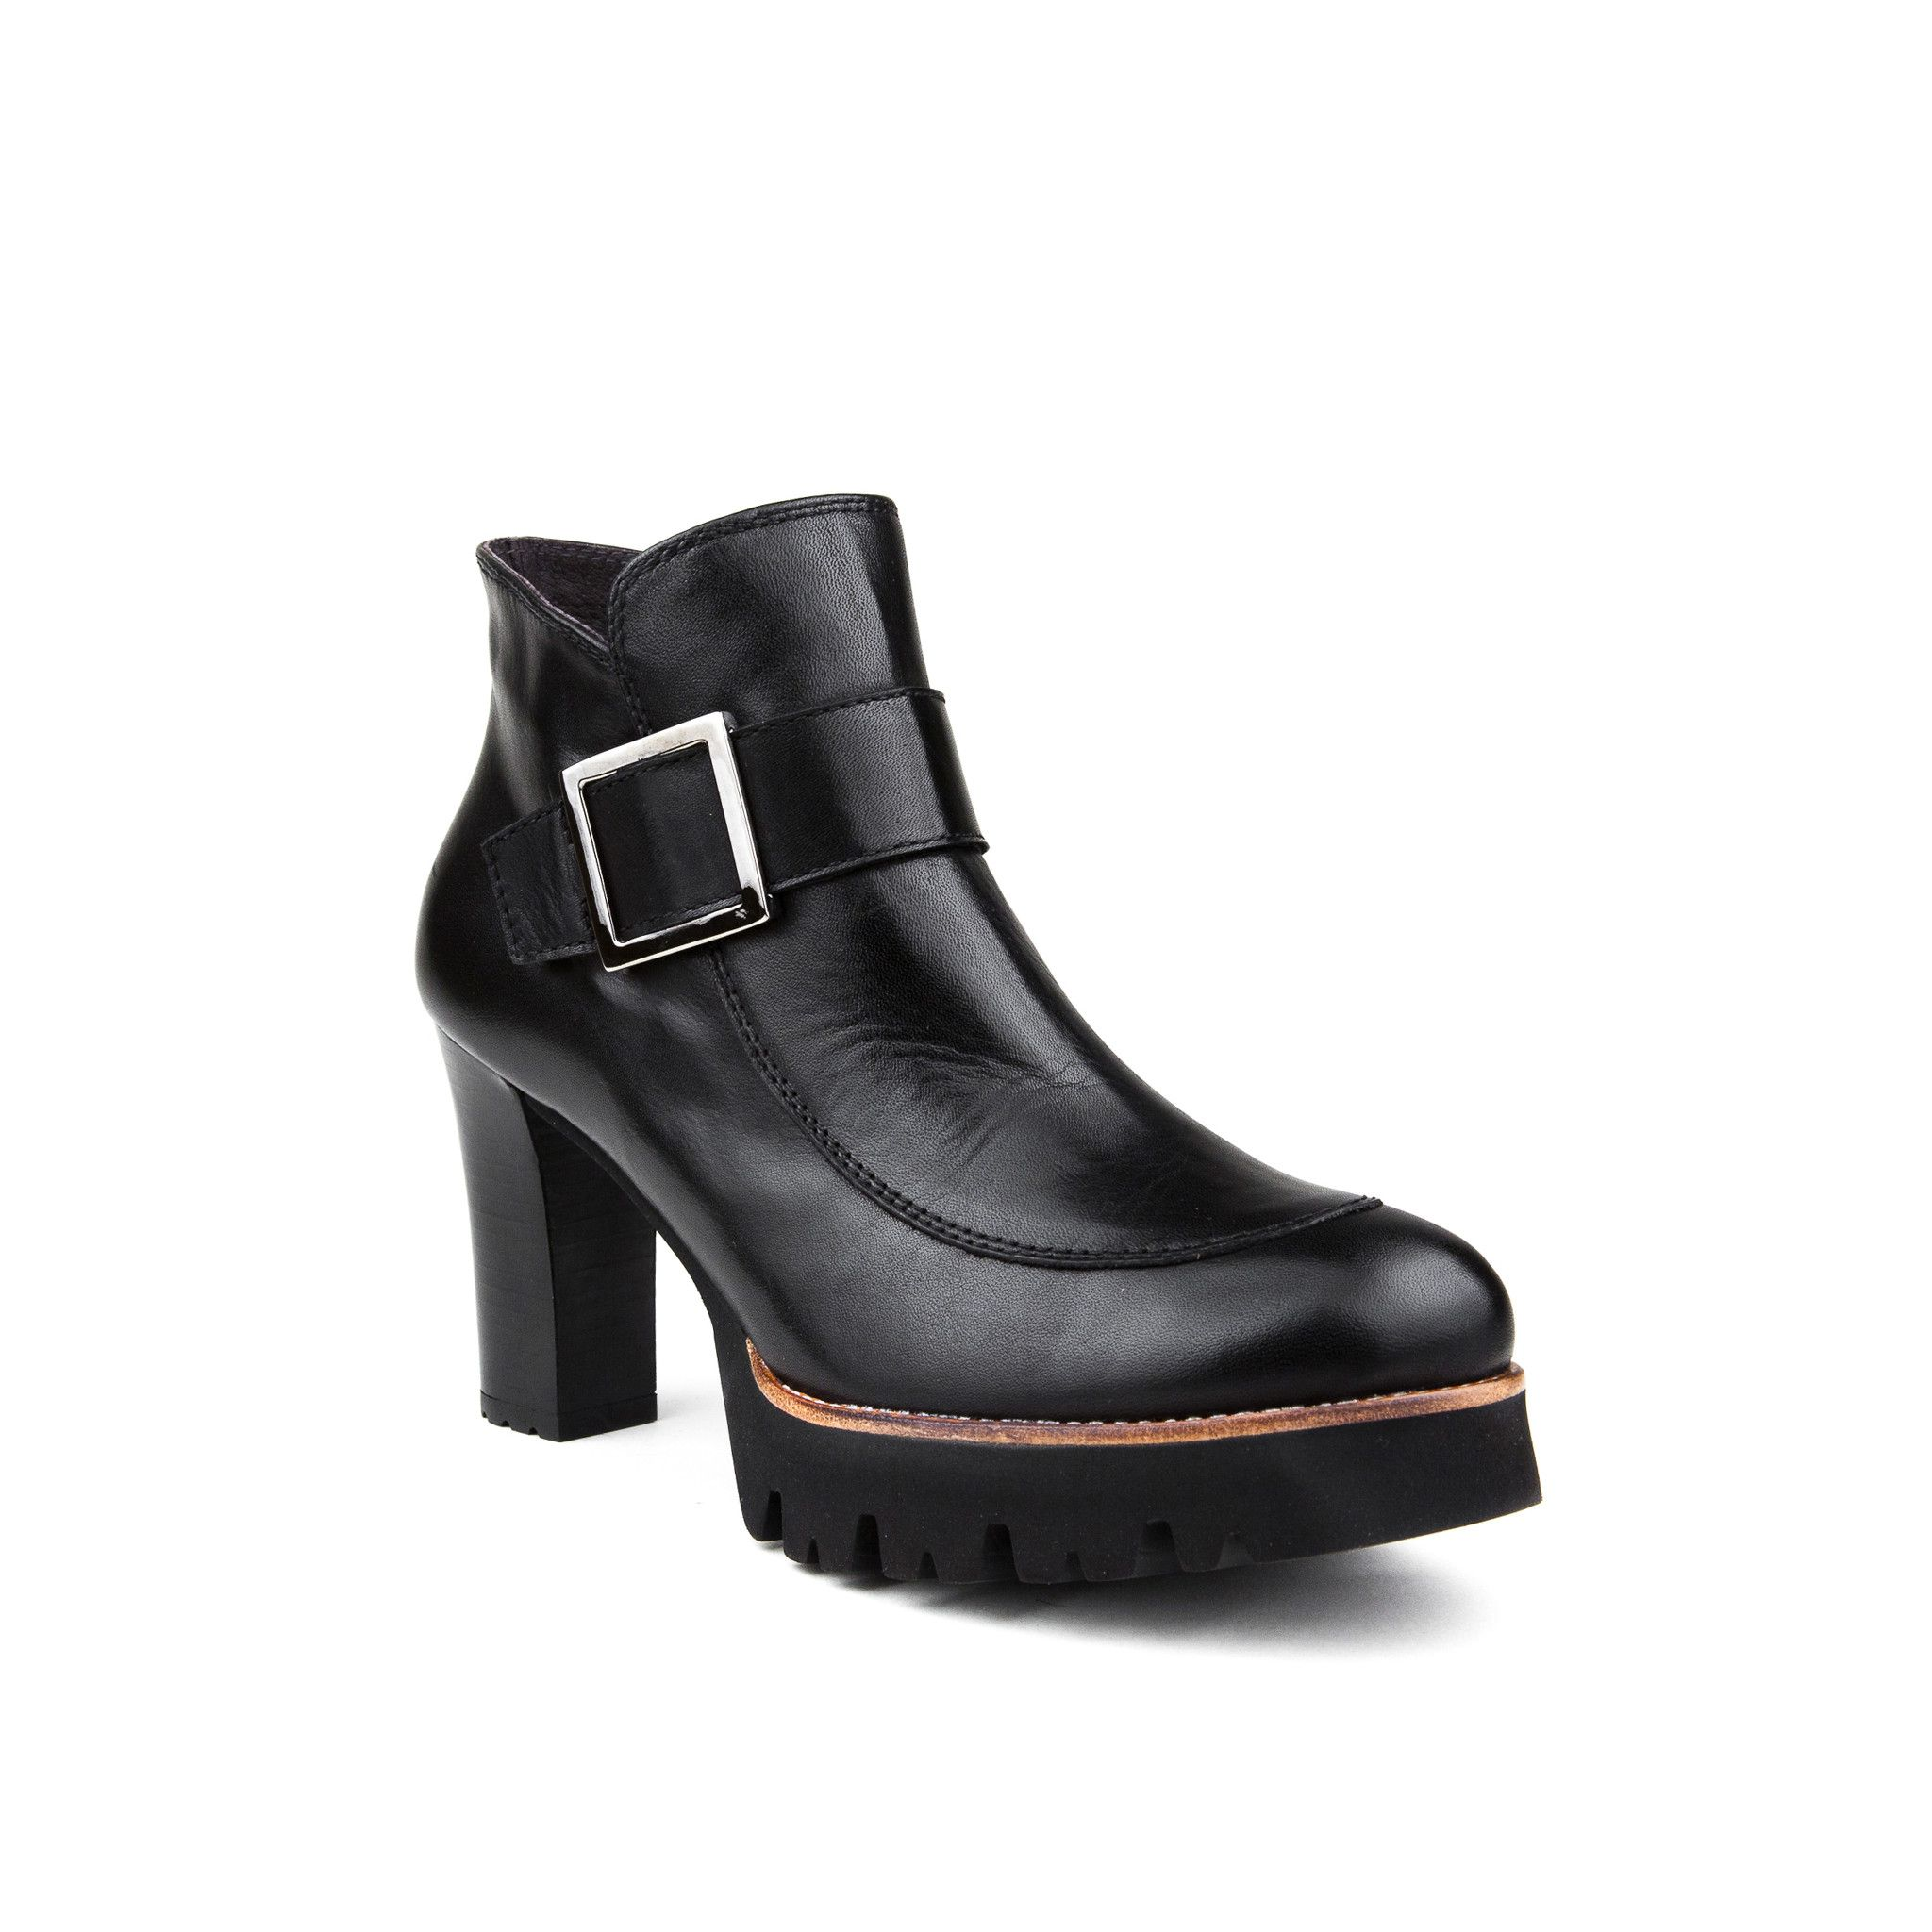 511ecabe4892 Gadea Short Black Boot with Buckle from ELLA Shoes Vancouver ...